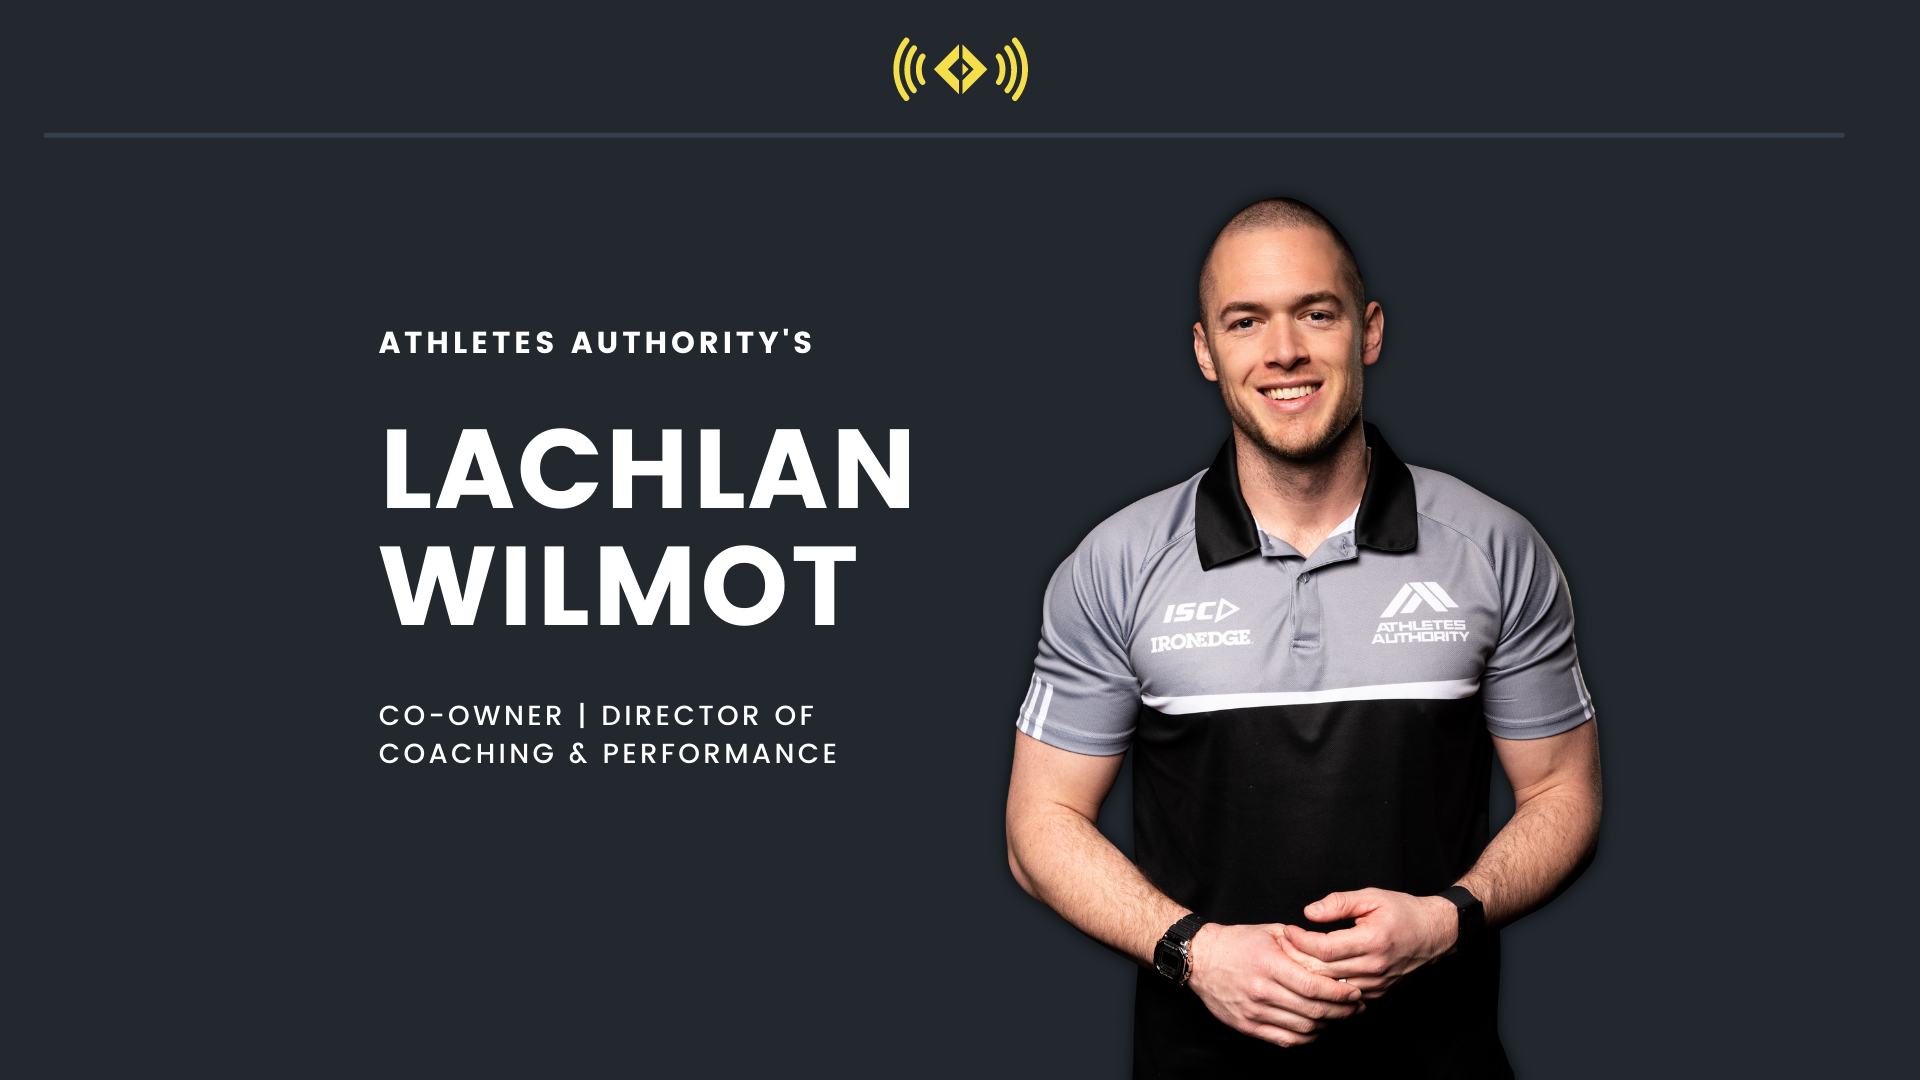 #175 - Athletes Authority's Lachlan Wilmot on Perfectionism & The Art of Coaching